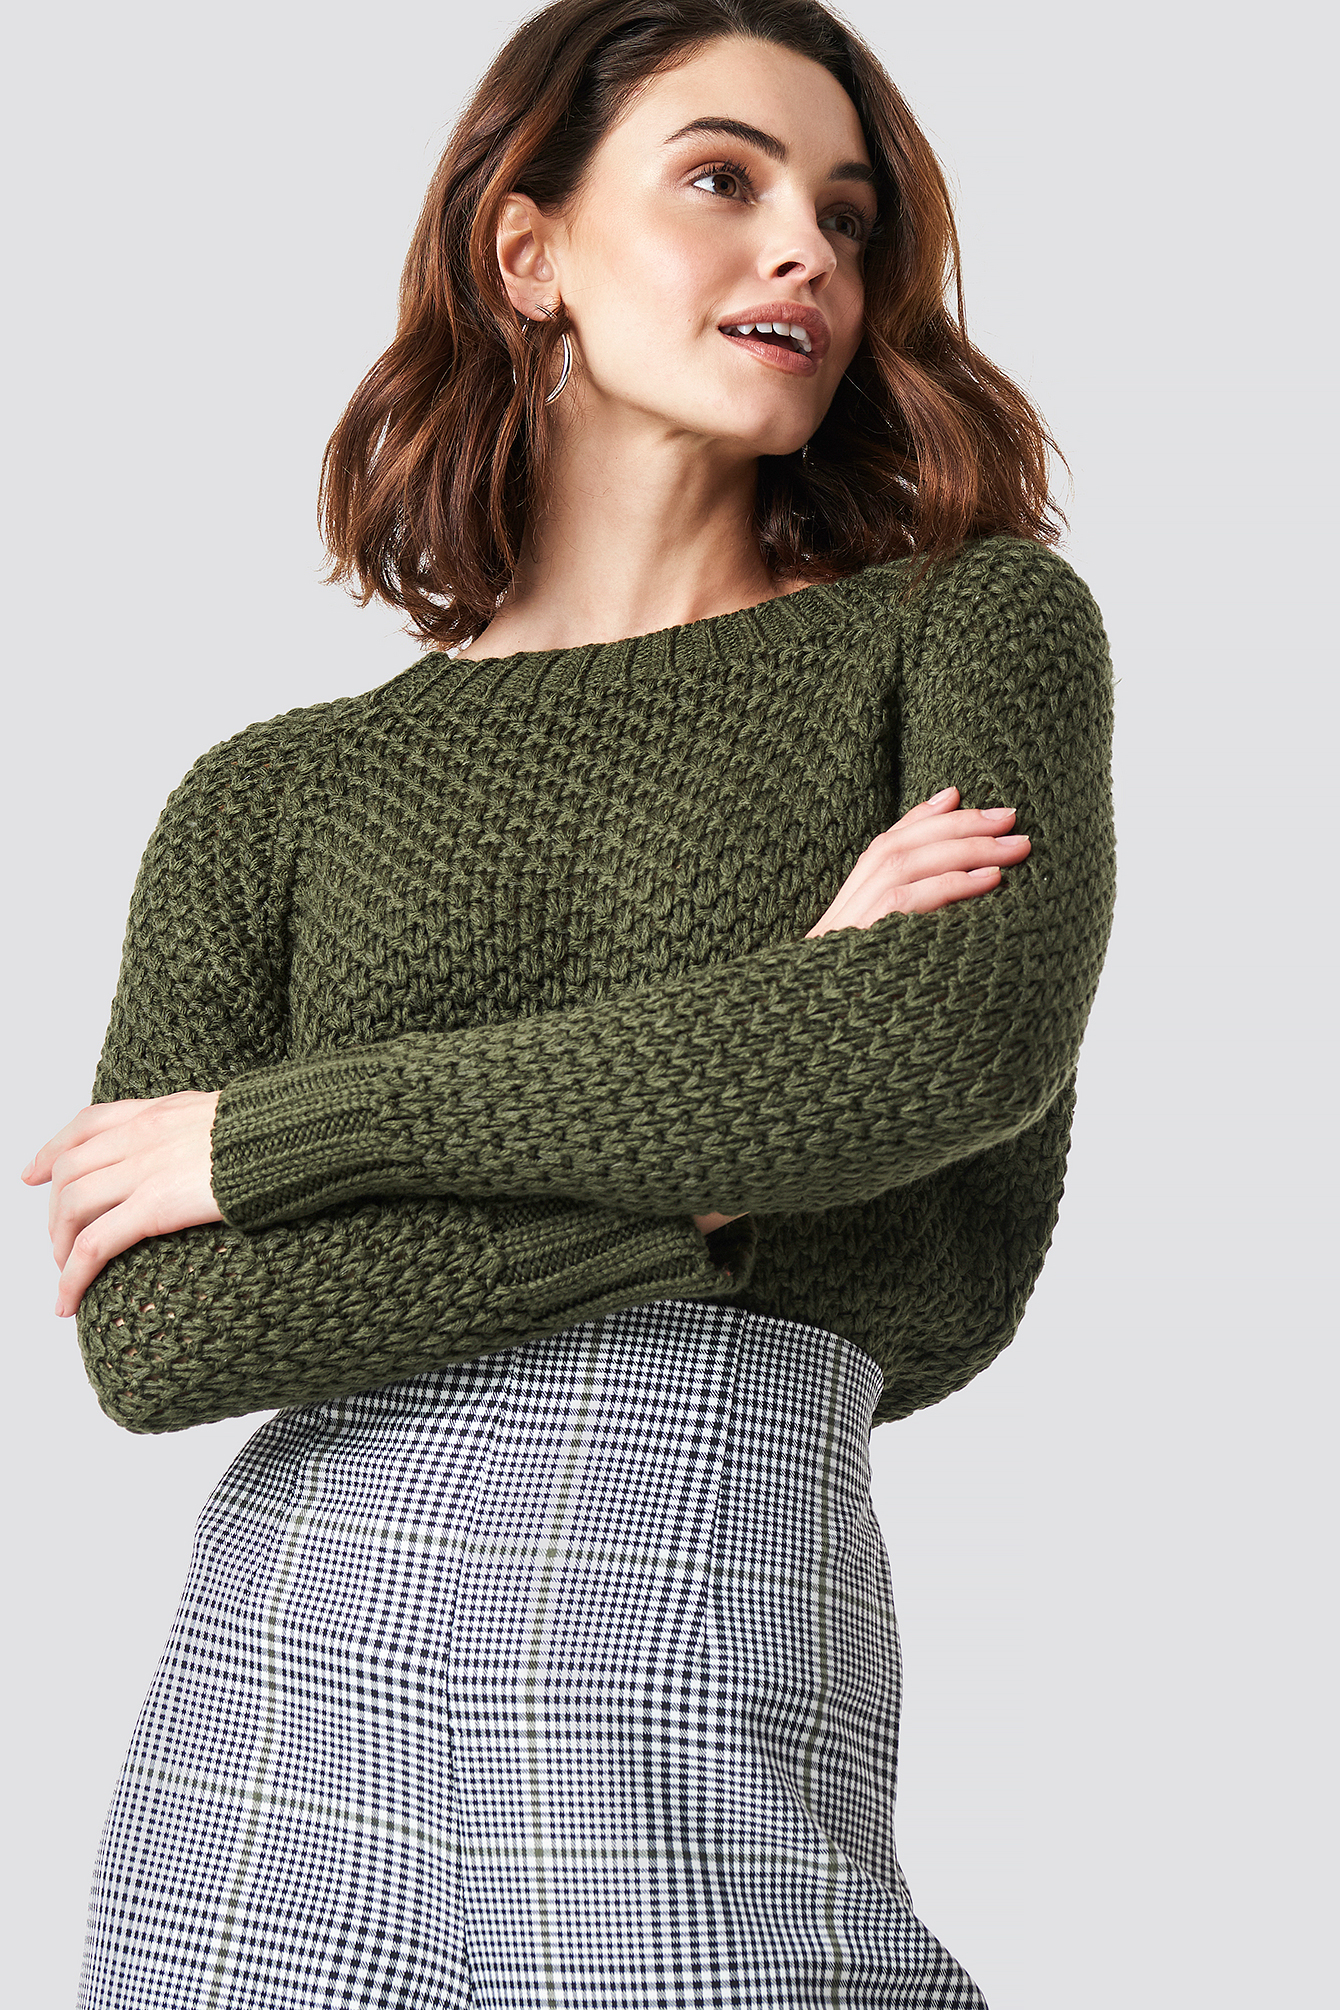 Khaki Knit Detailed Sweater